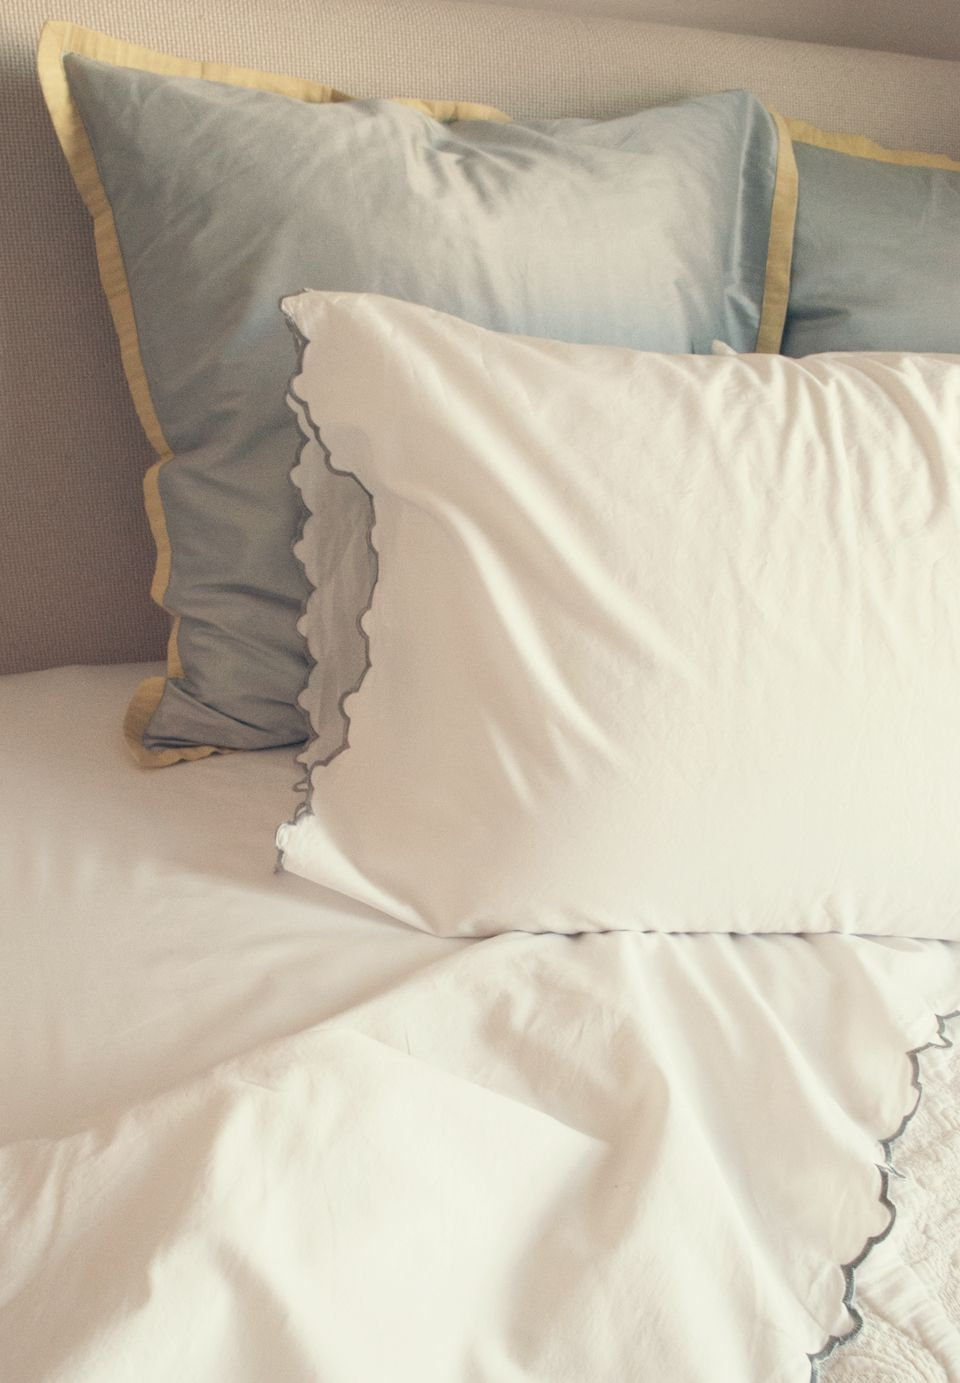 Pin By Valerie Inclan On As Seen In Bedroom Inspiration And Bedroom Ideas Luxury Sheets Bed Linens Luxury Crane Canopy